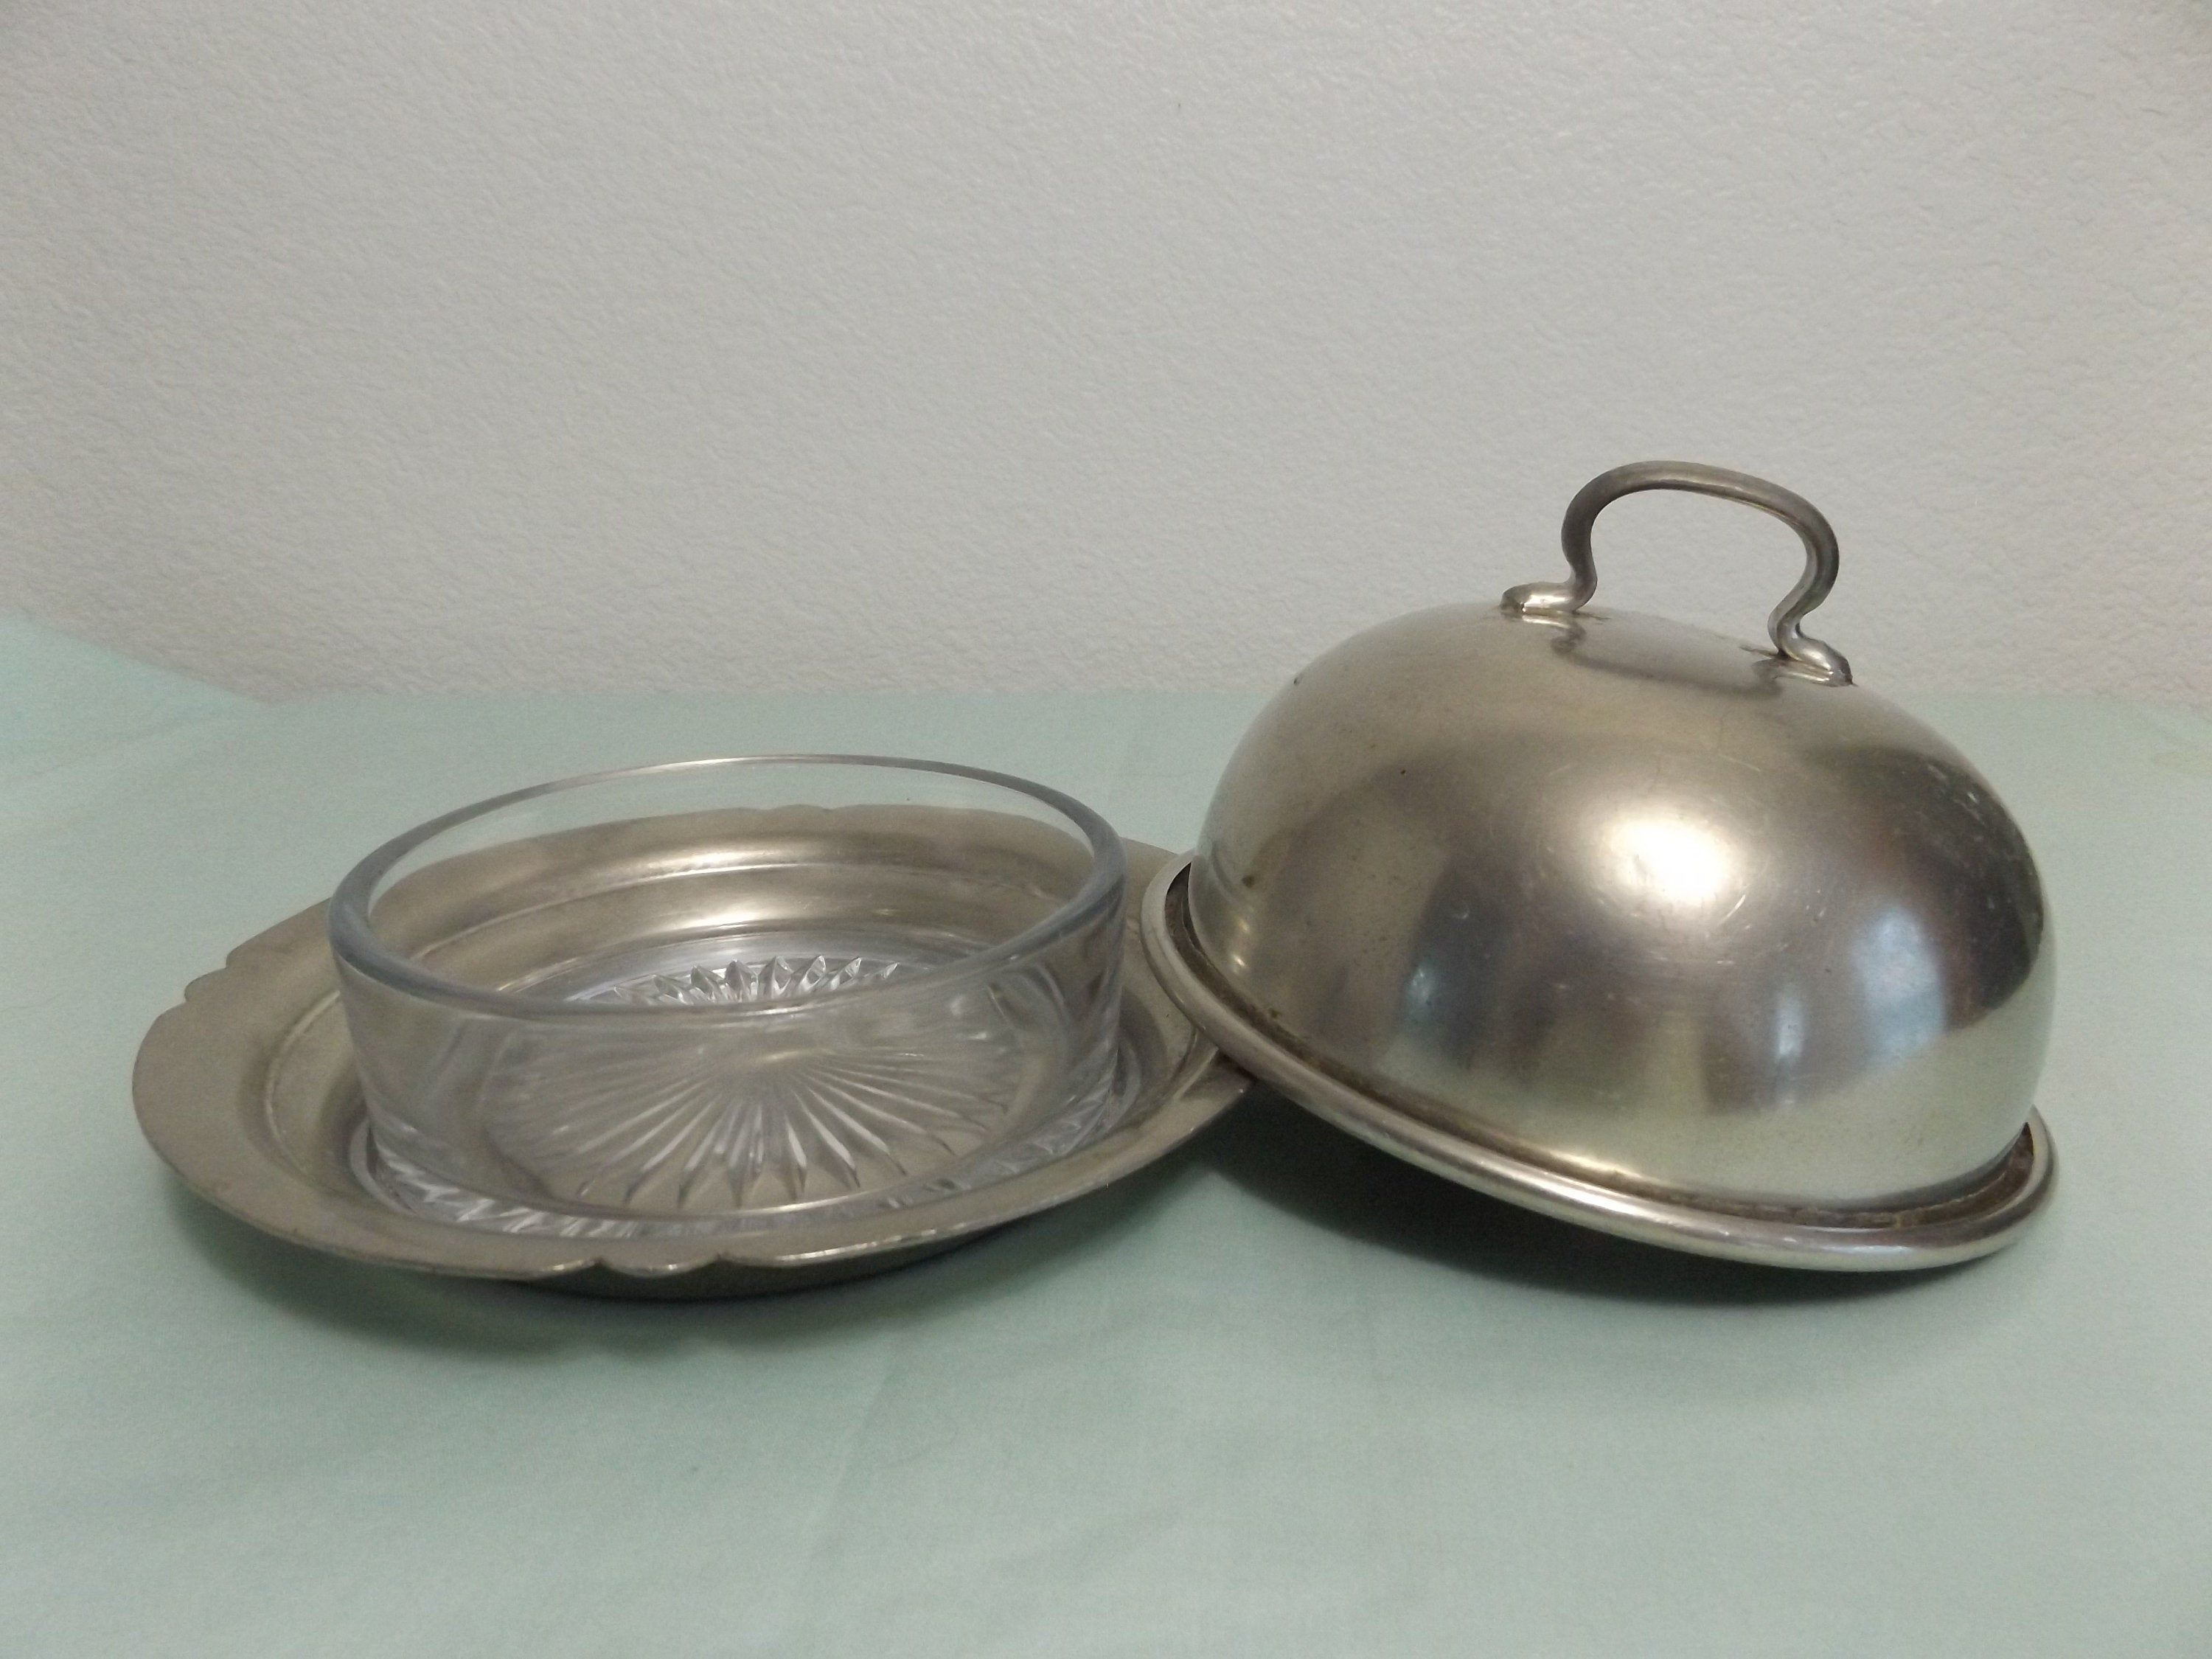 Vintage Pewter Butter Dish W Domed Lid And Glass Insert Three Piece Round Cheese Dish Butter Dish Cheese Dishes Butter